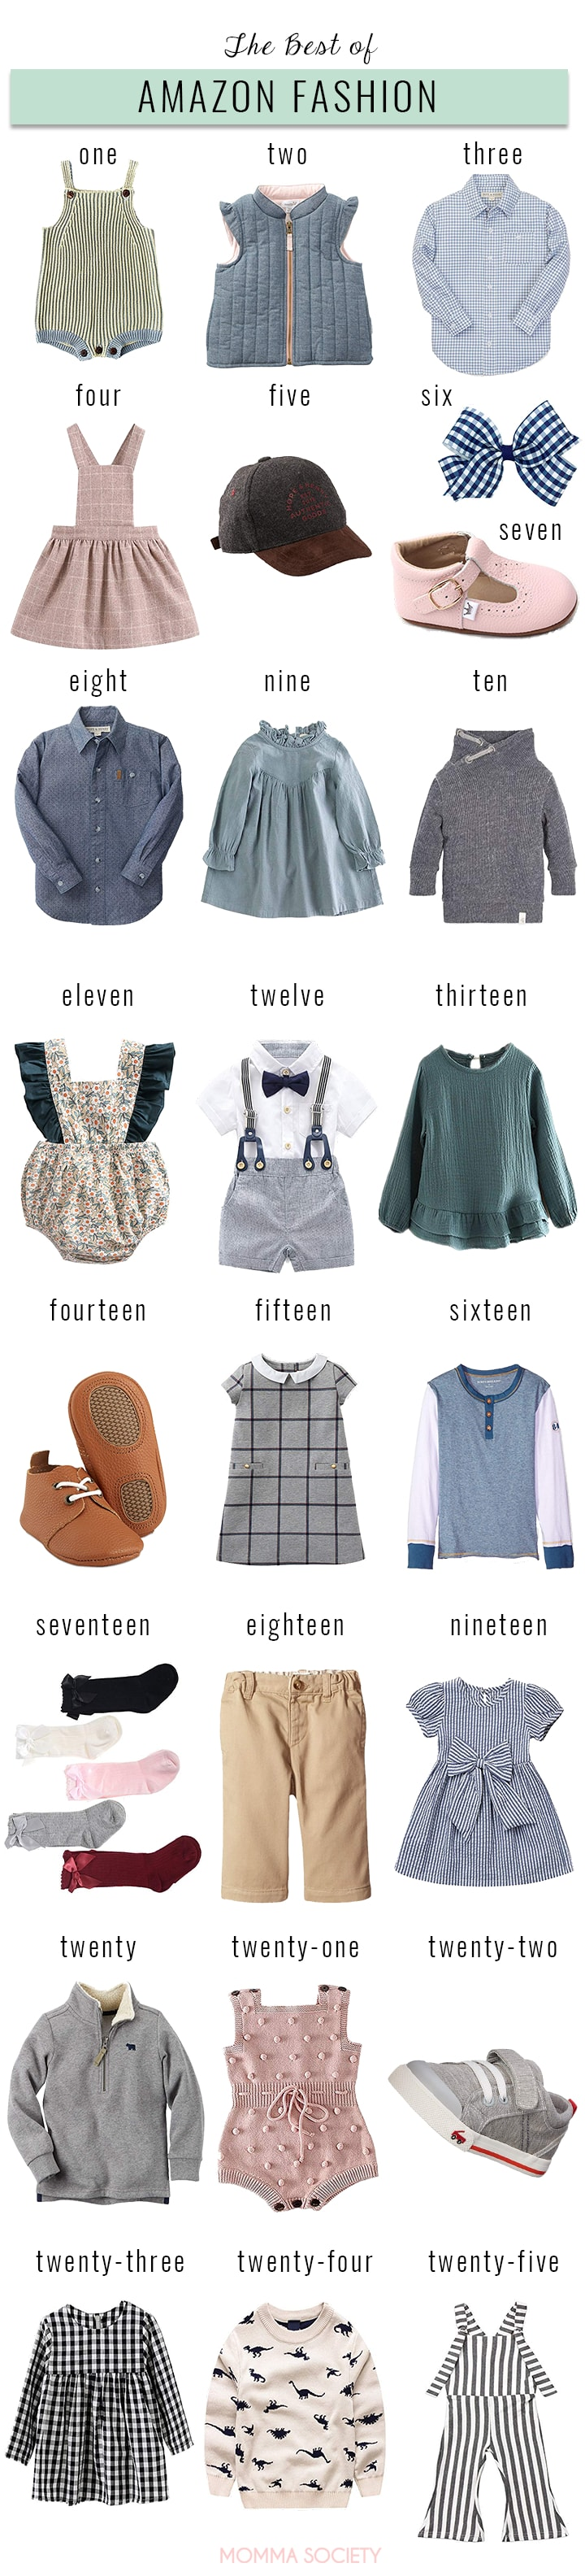 7e71524a8 The Best of Amazon Fashion for Babies + Toddlers — Momma Society